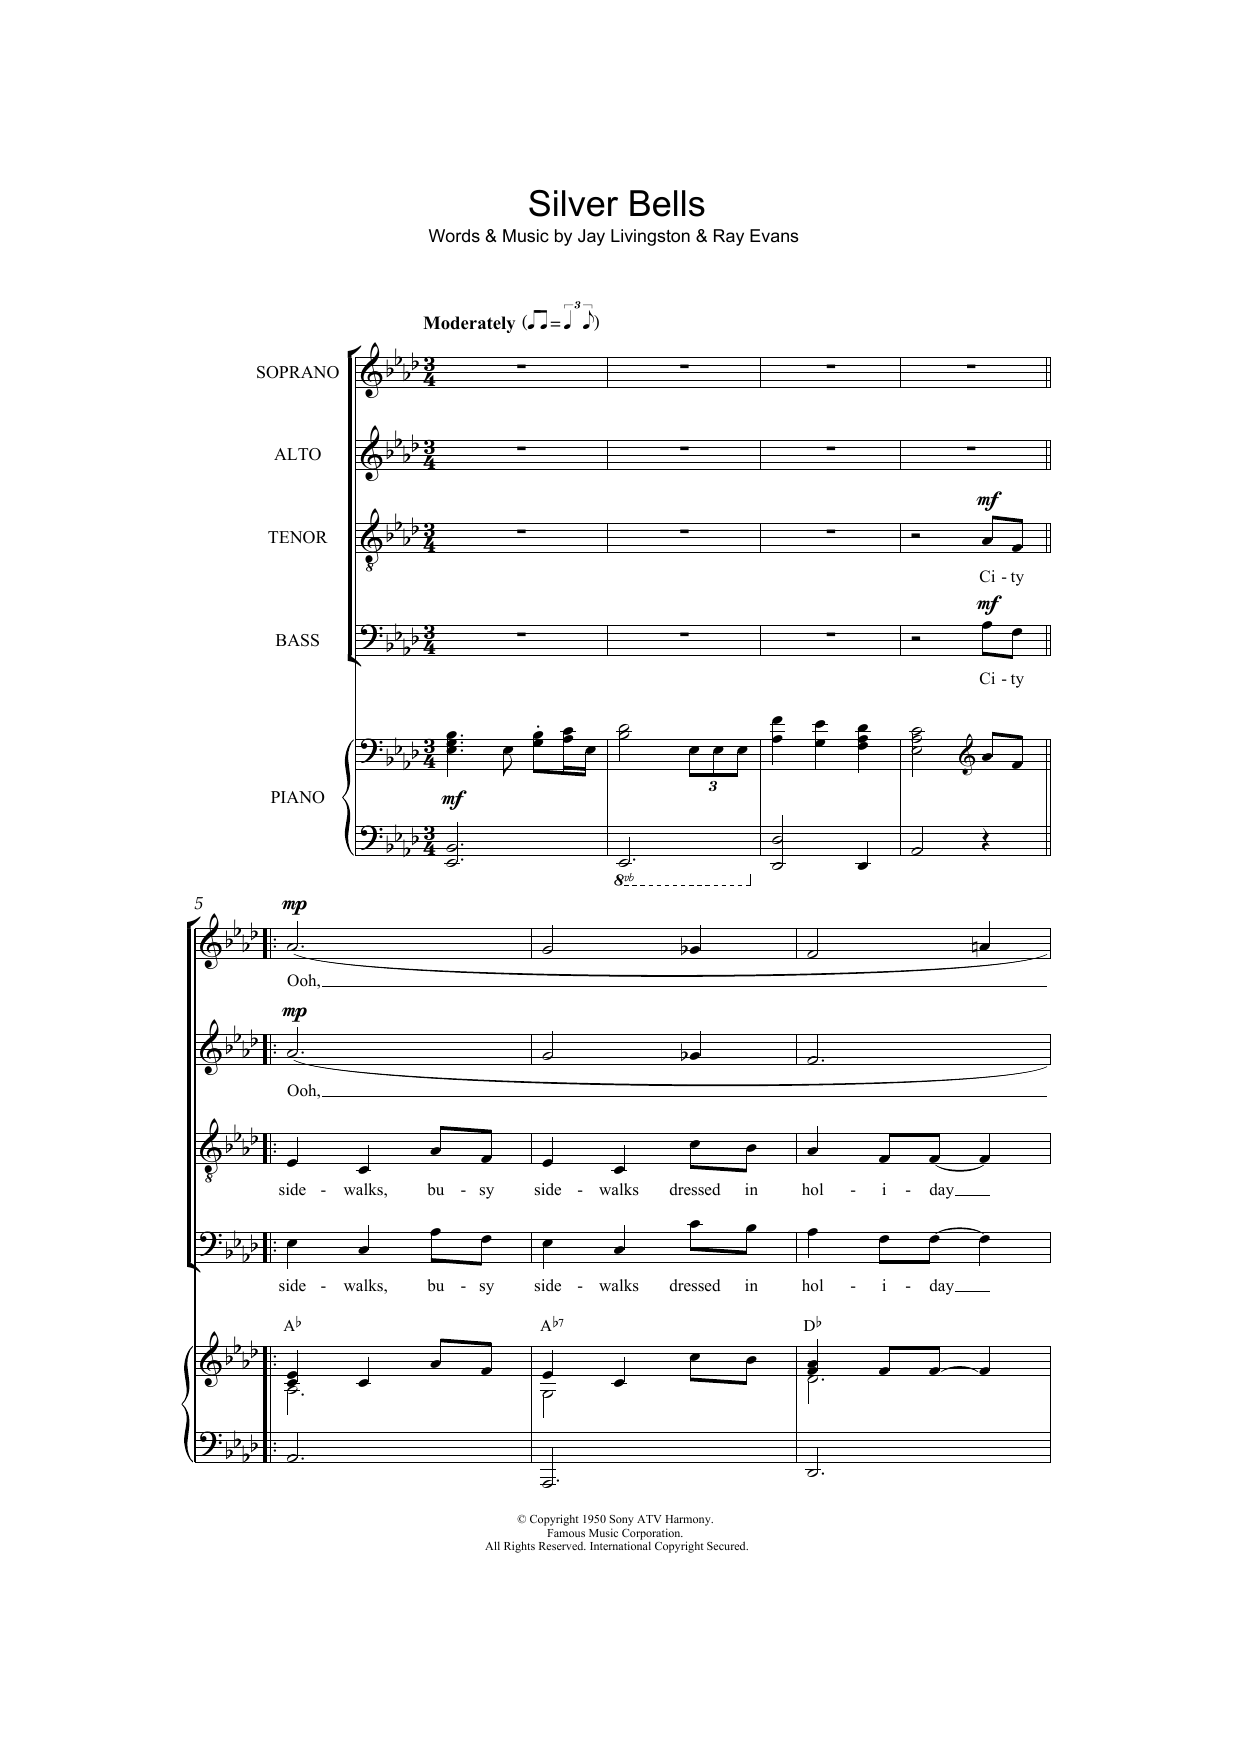 Silver Bells Choral Satb Sheet Music By By Jay Livingston Satb